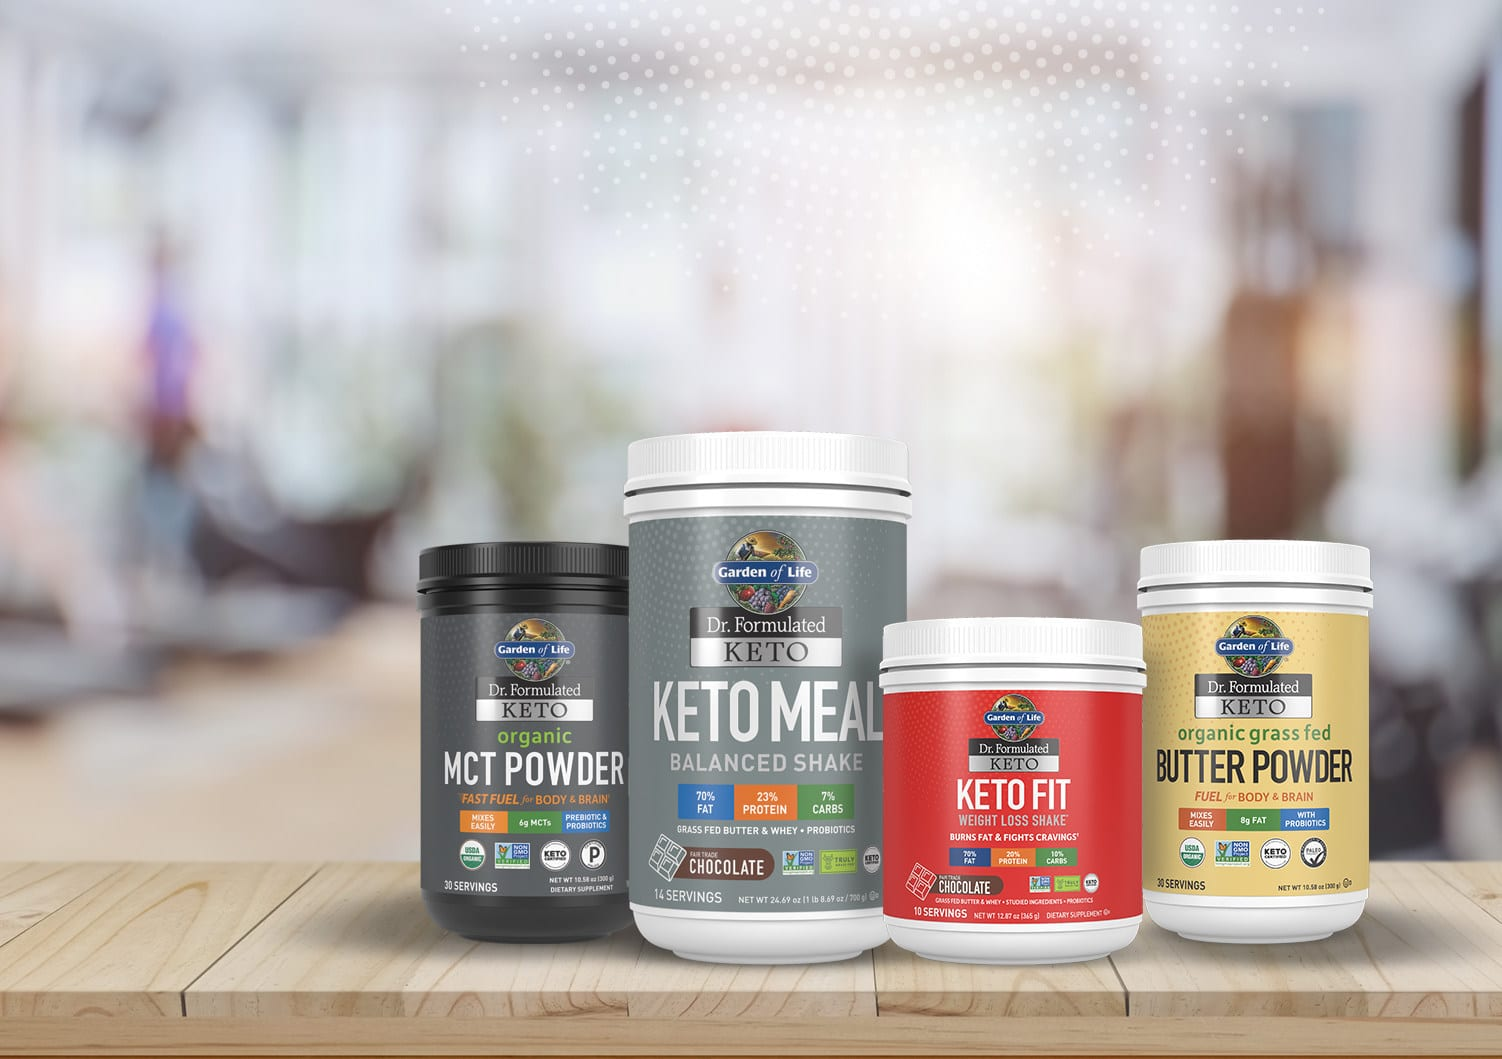 dr-formulated-keto-product-group